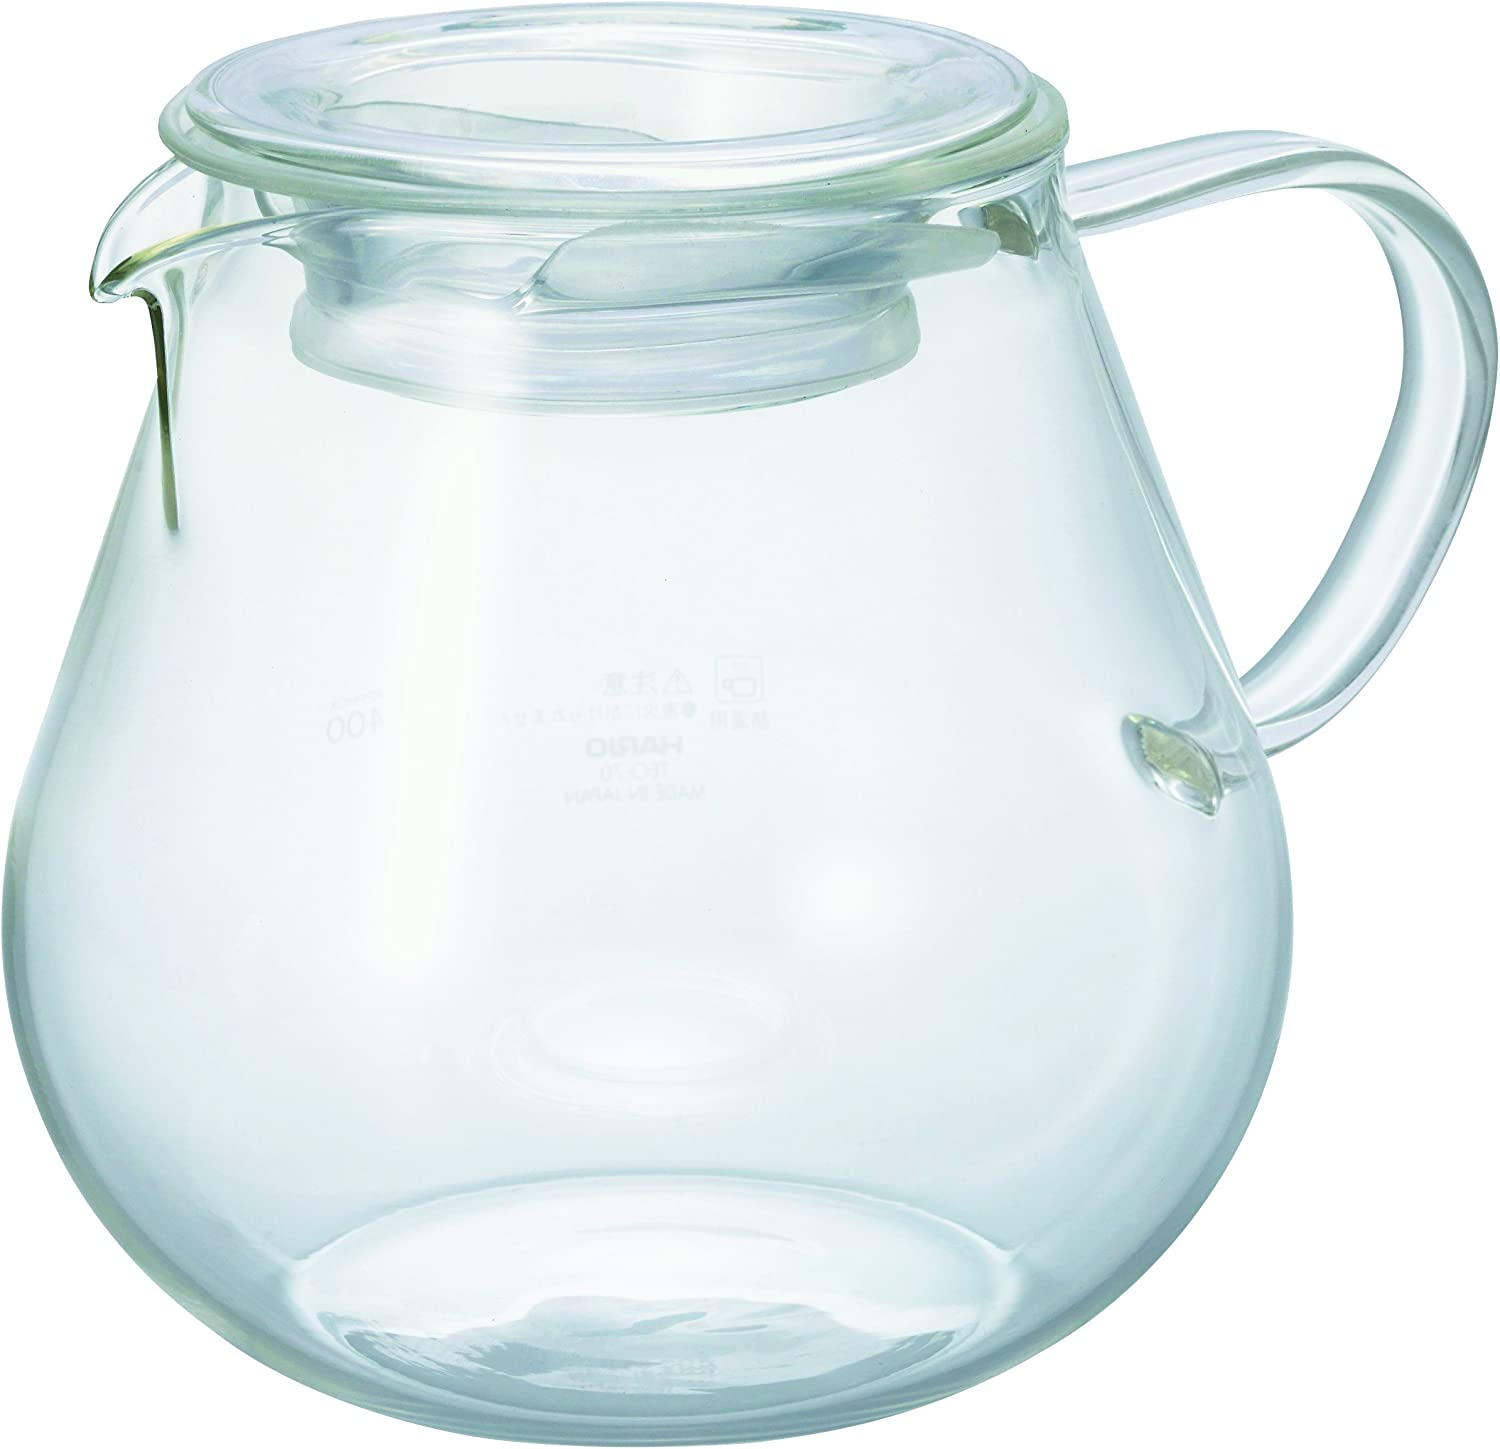 One Size HARIO Gs-70-T Silicone Lid Tightly Integrated With Coffee Pot Transparent Black